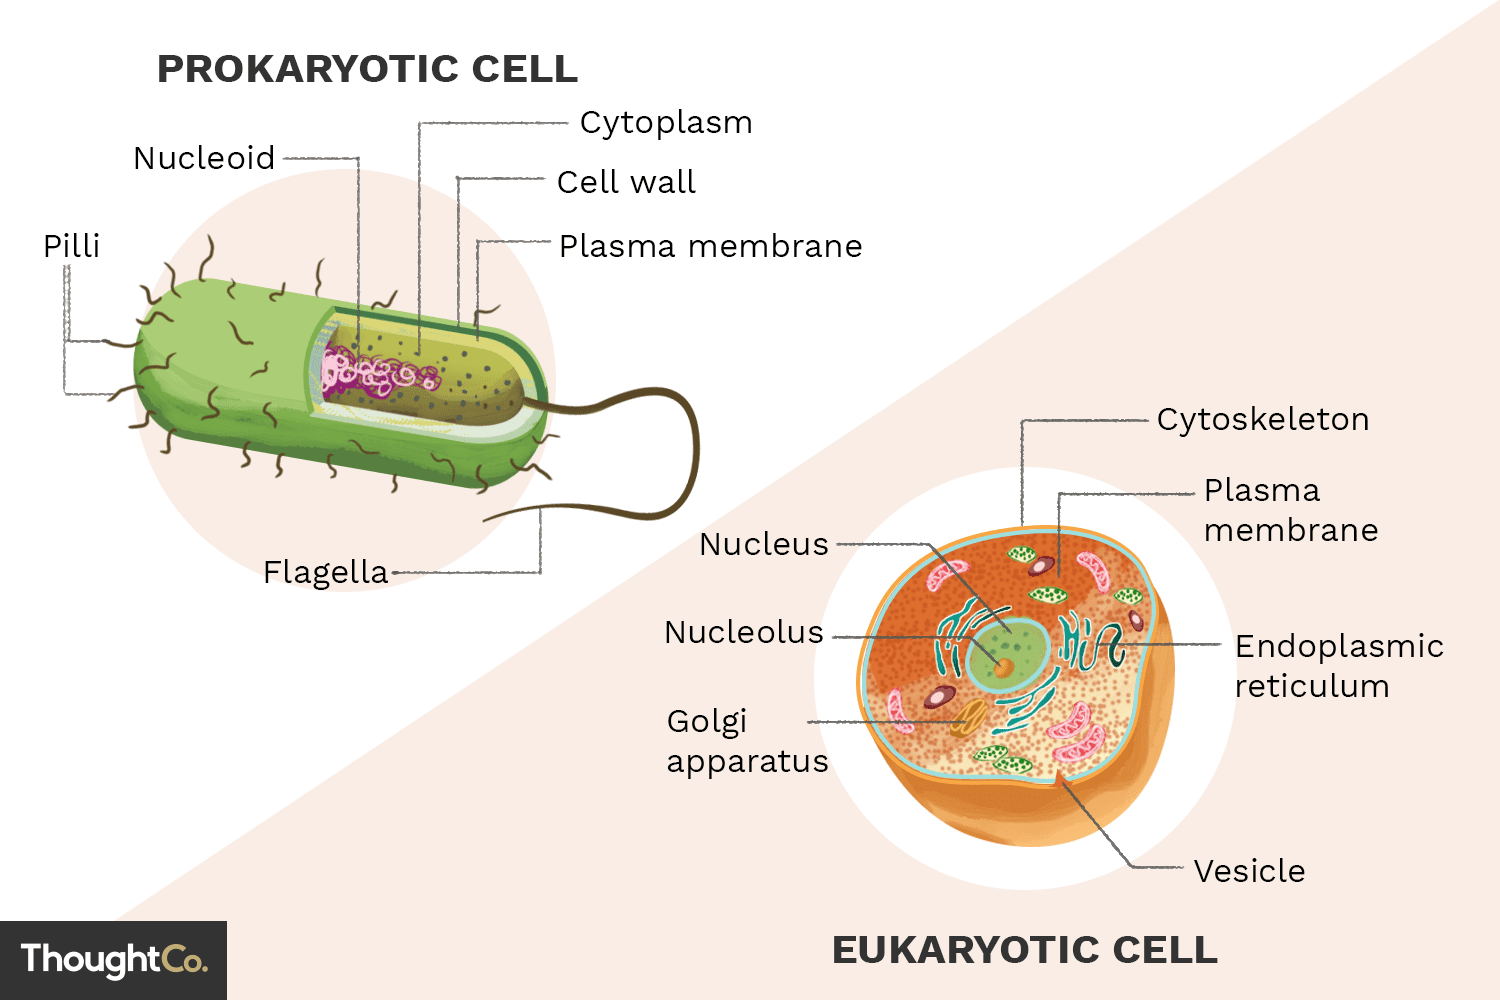 What Are the Differences Between Prokaryotes and Eukaryotes?